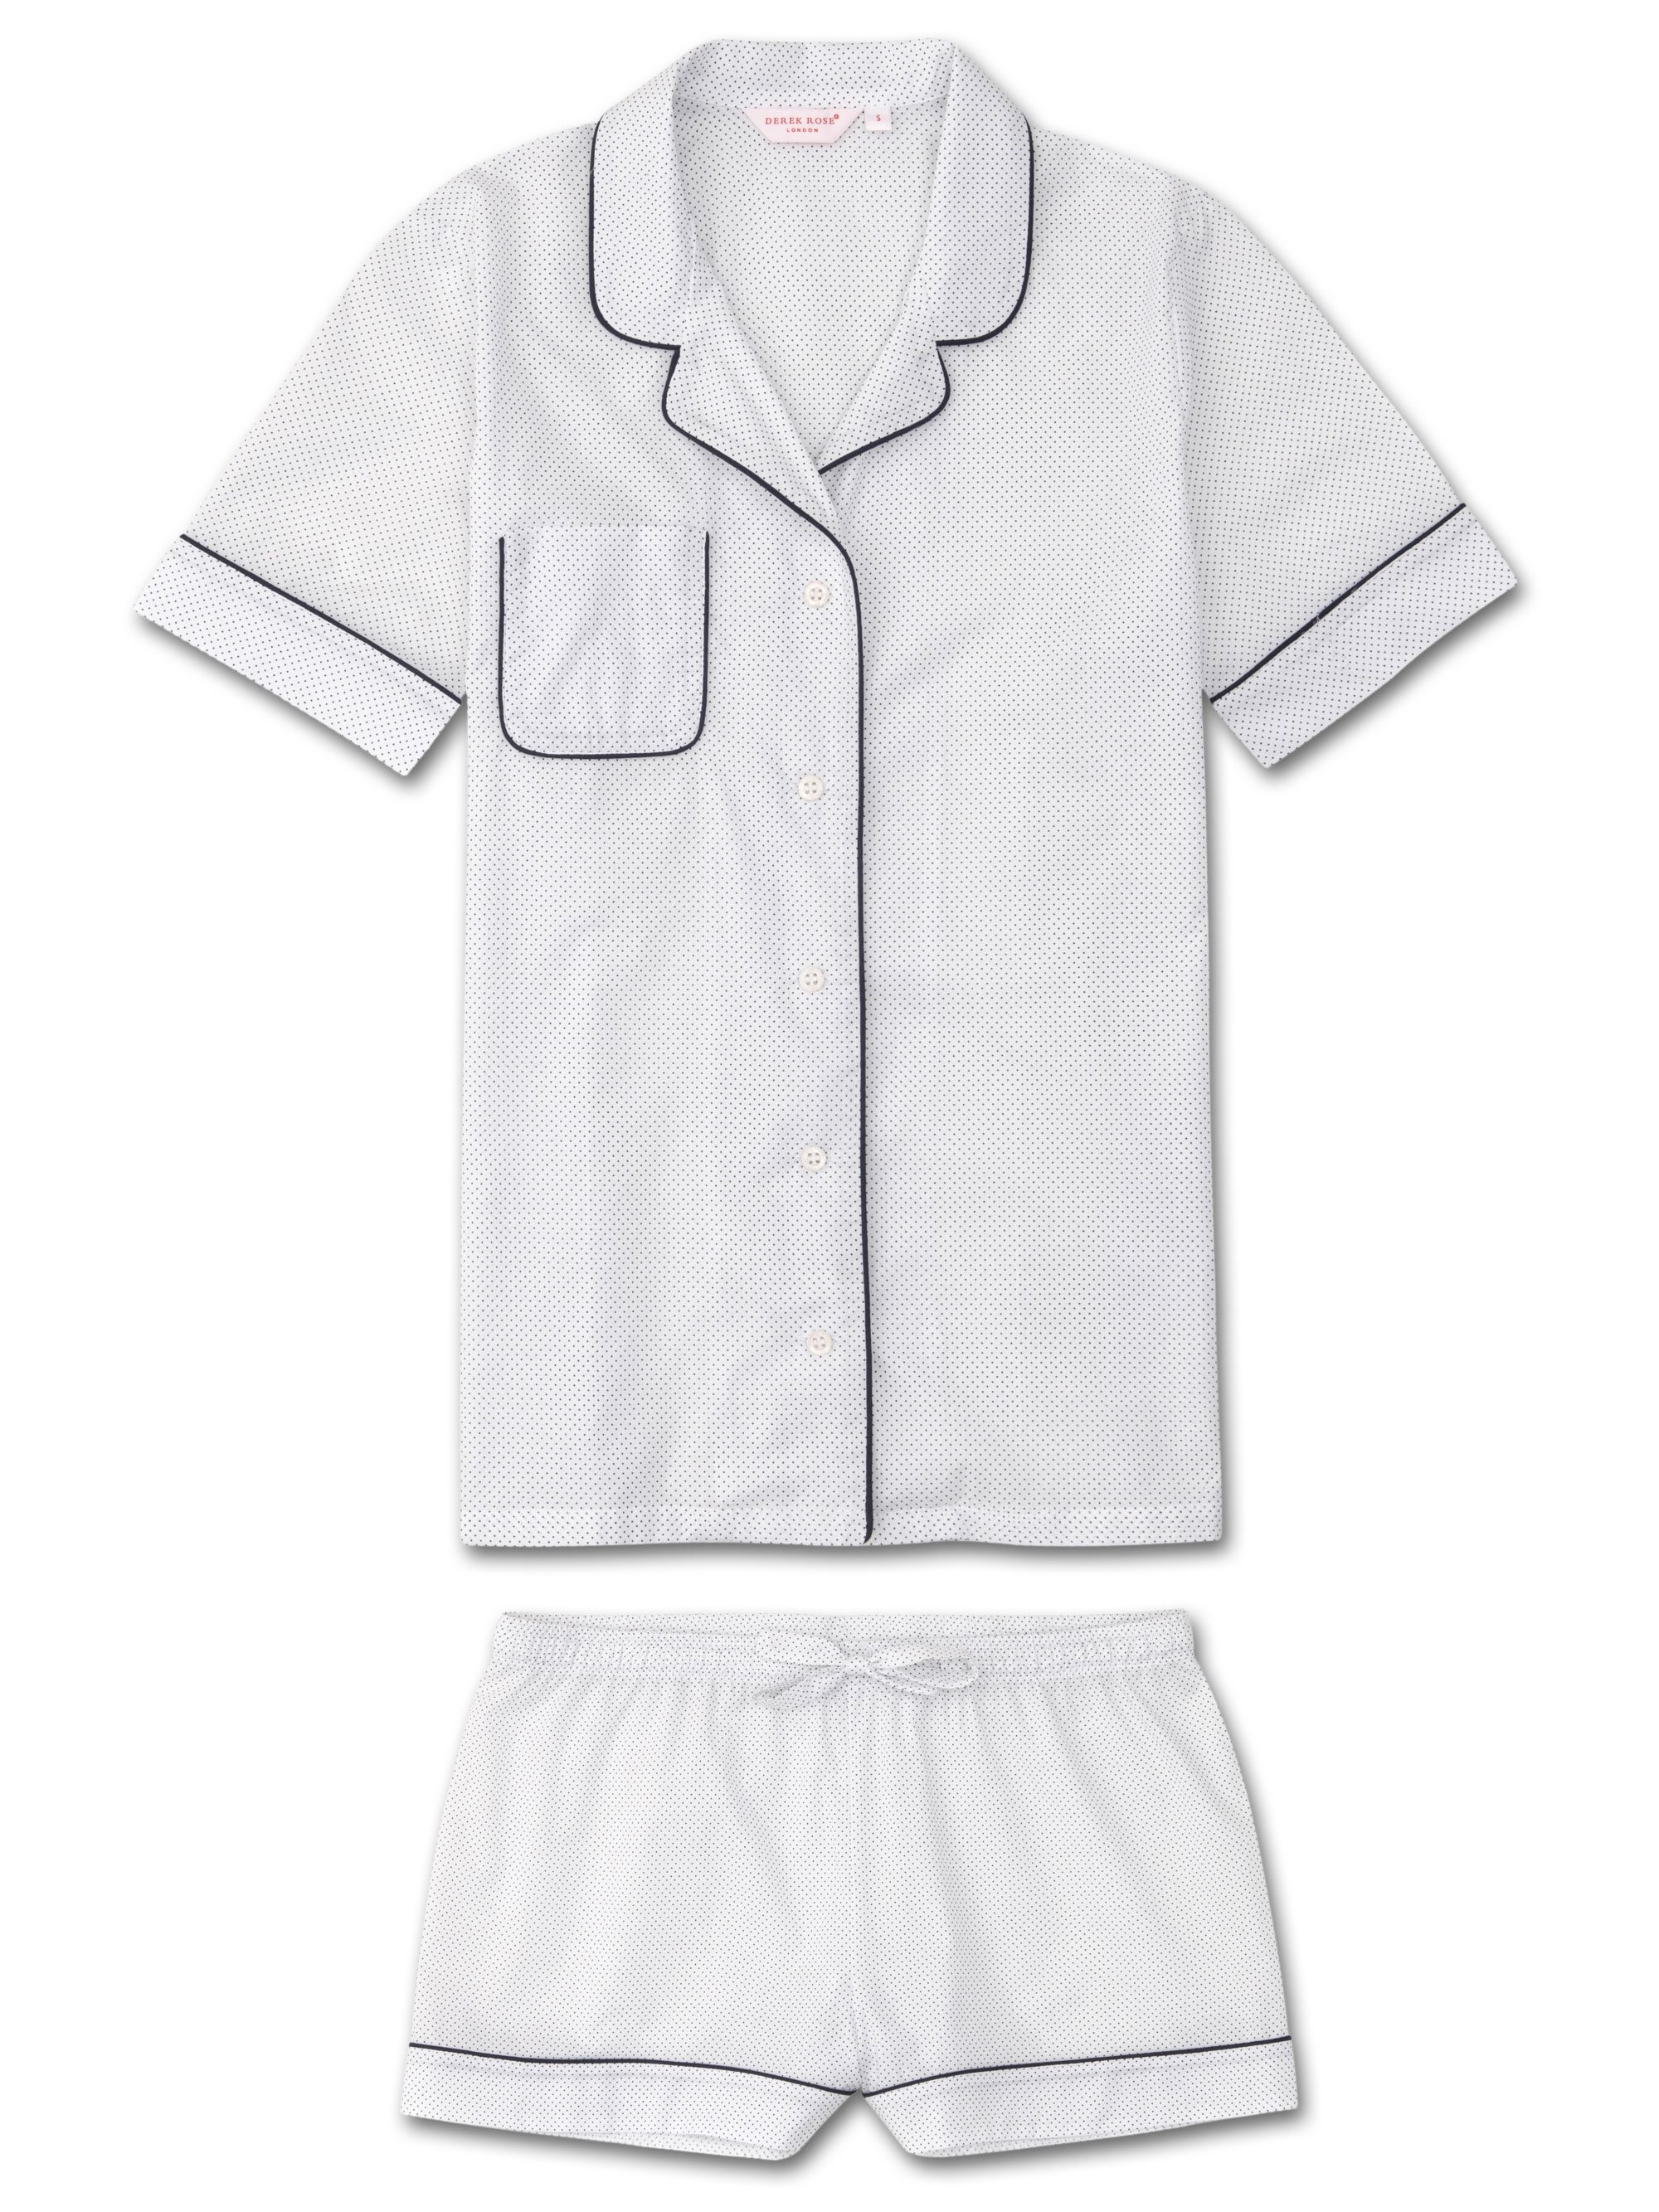 Women's Shortie Pyjamas Plaza 21 Cotton Batiste White